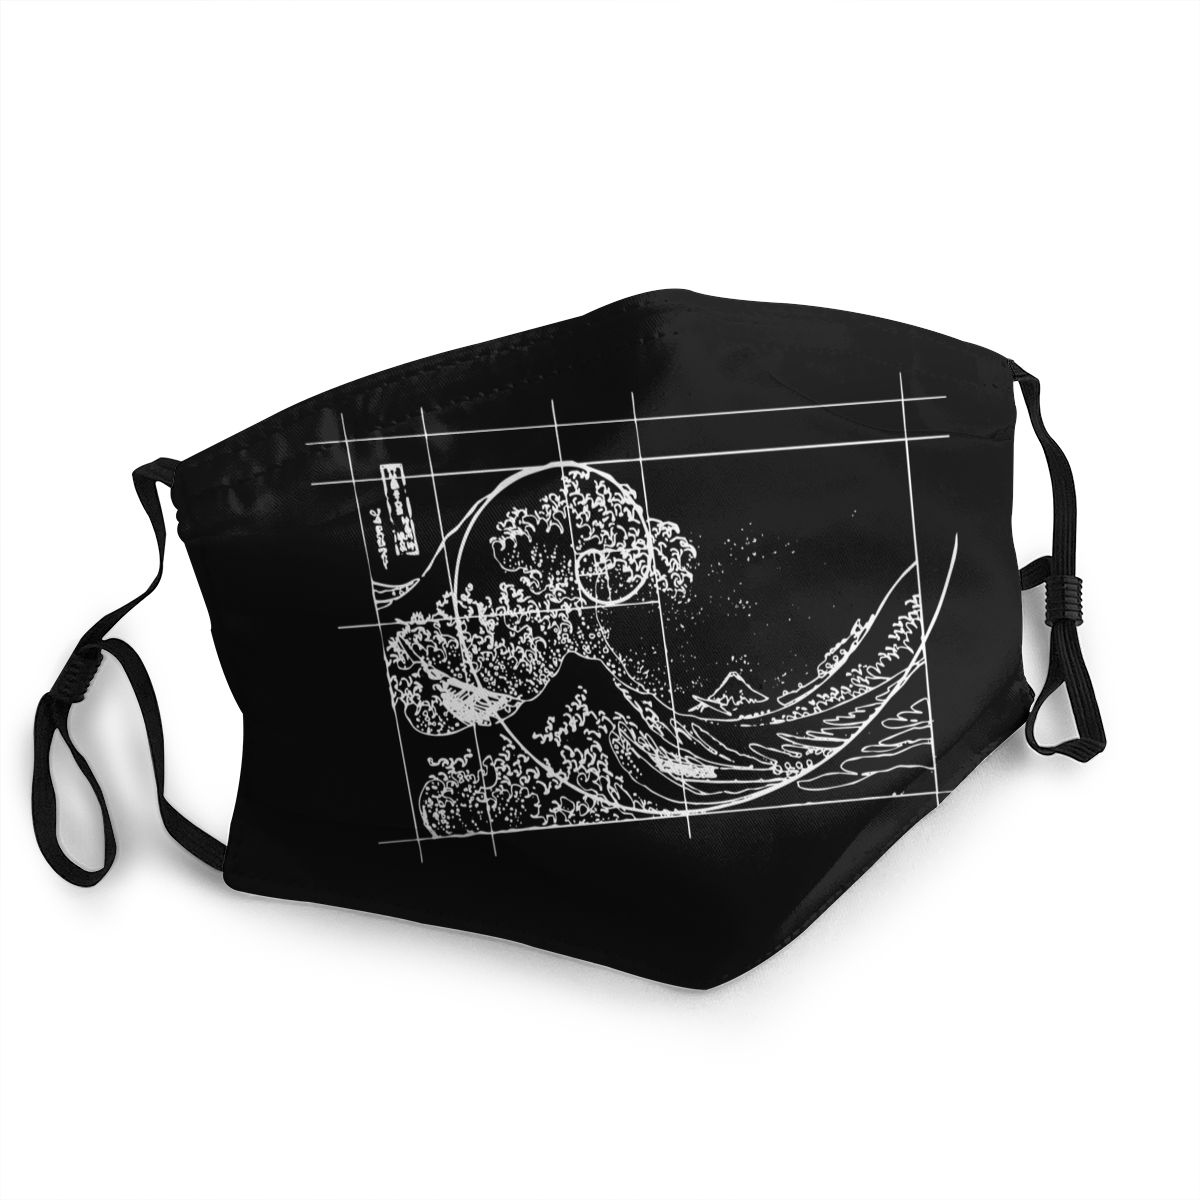 Hokusai Meets Fibonacci Sequence Non-Disposable Face Mask Anti Bacterial Dust Mask Protection Cover Respirator Mouth Muffle